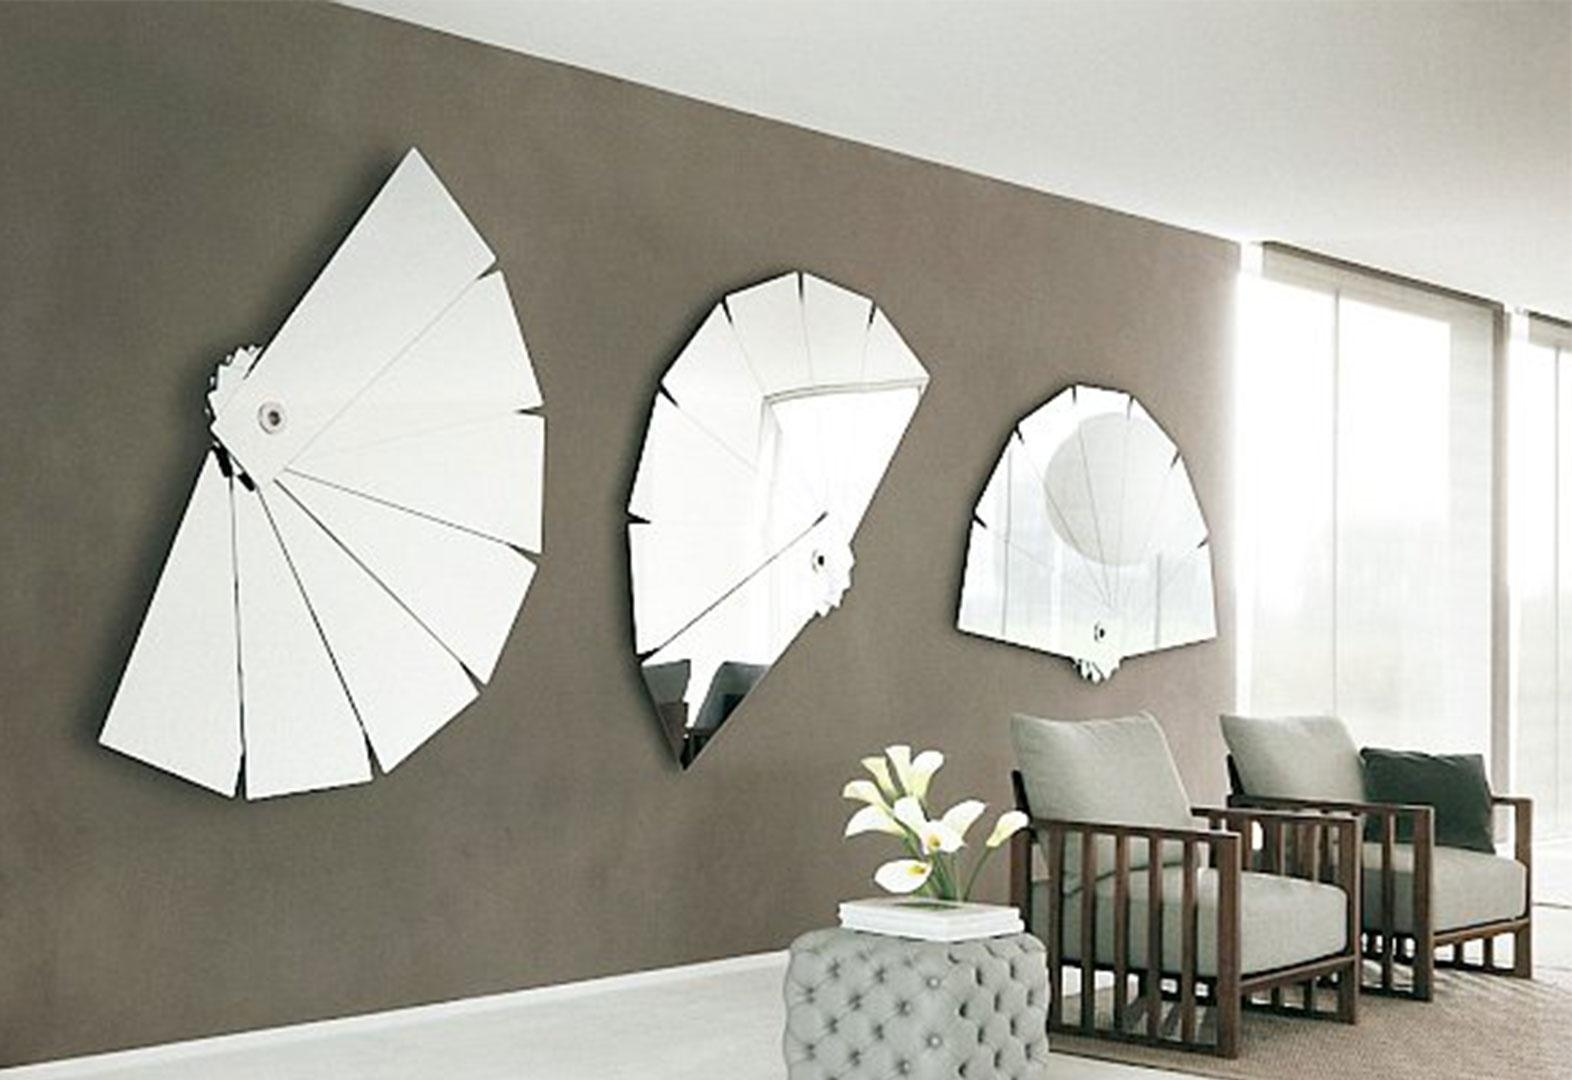 Large Modern Wall Mirrors Best Decorative Wall Mirrors Ideas Intended For Wall Mirrors Contemporary (View 13 of 15)